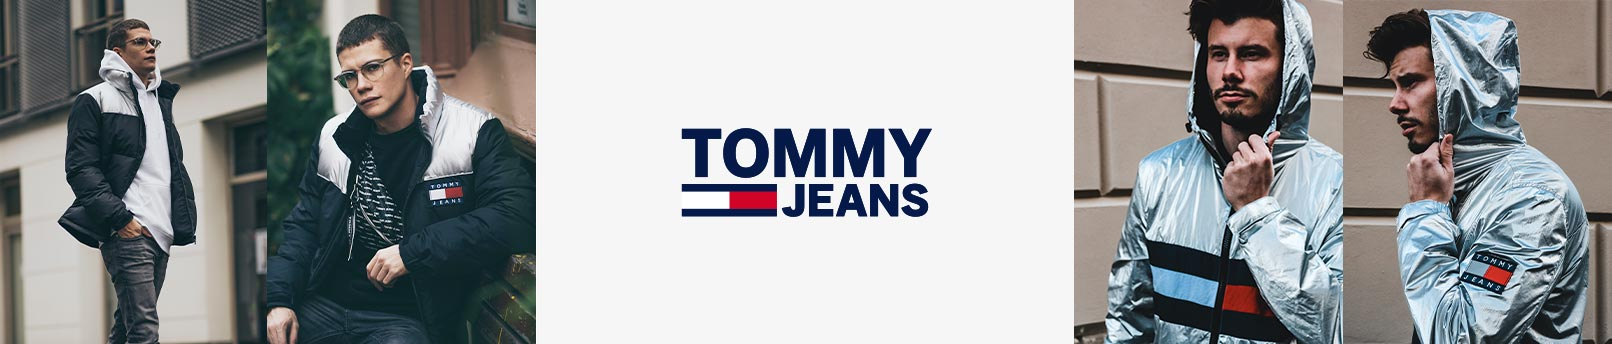 Shop Tommy Jeans